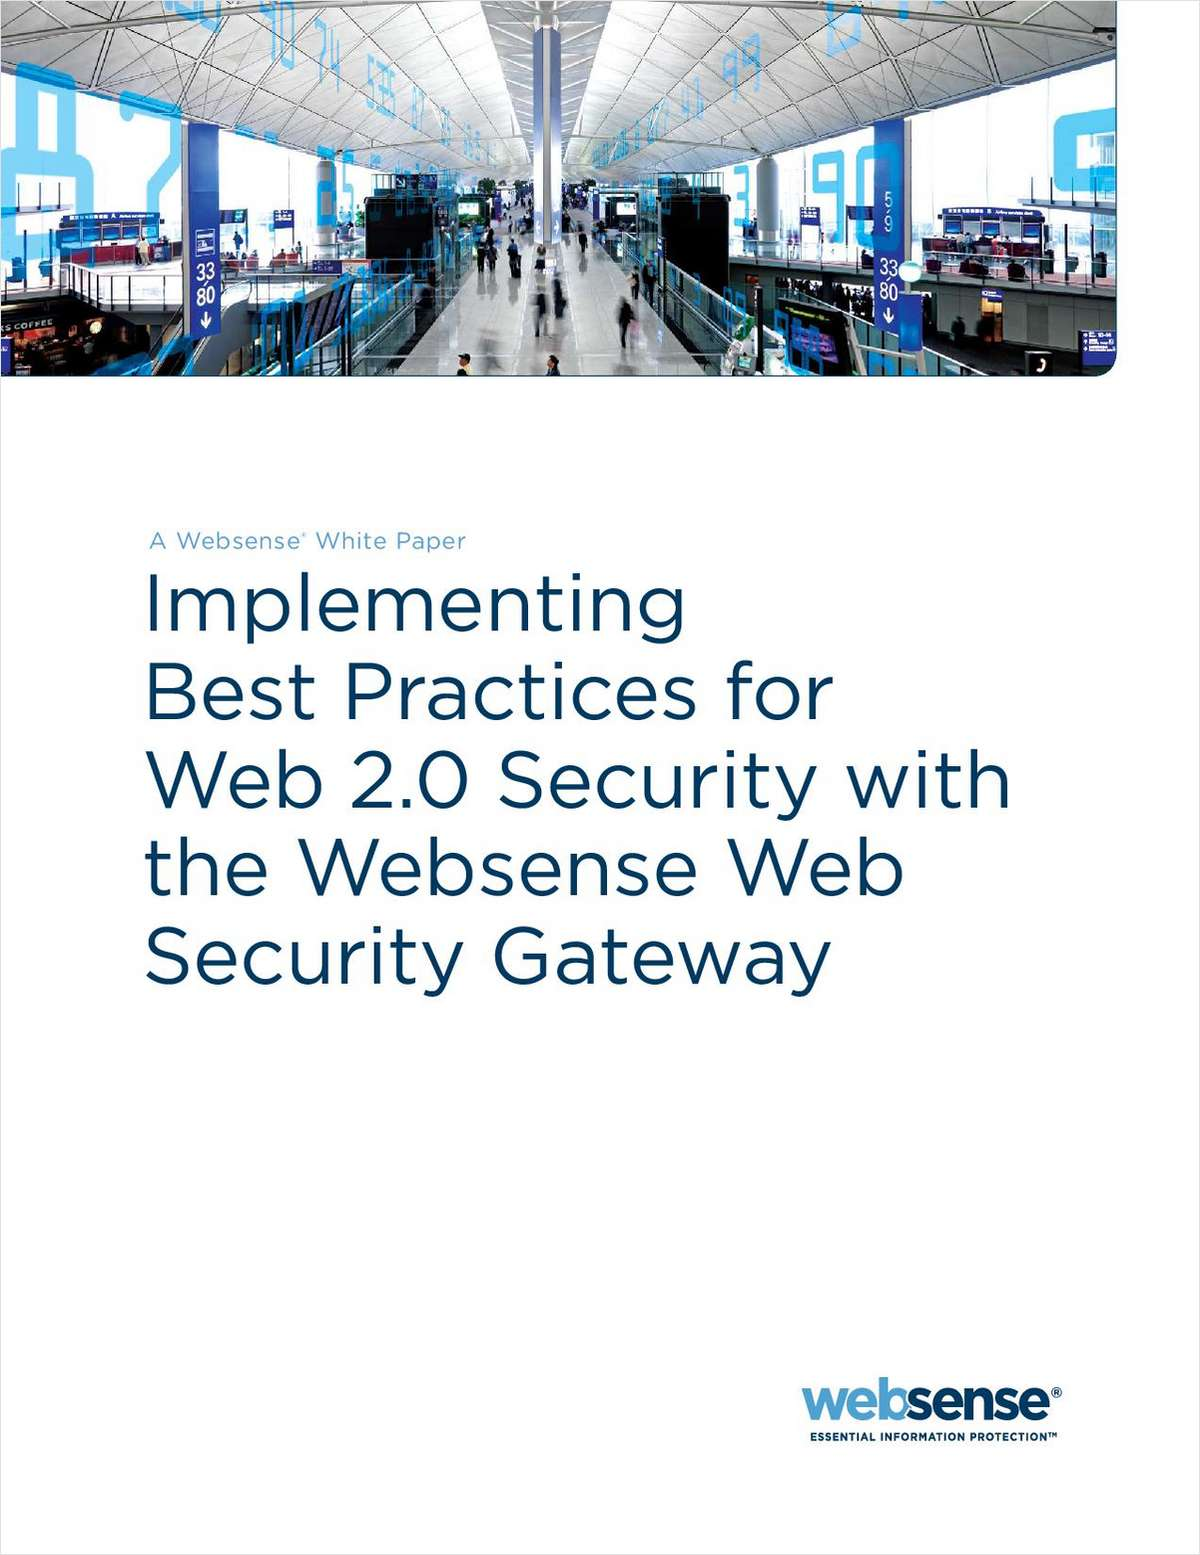 Implementing Best Practices for Web 2.0 Security with the Websense Web Security Gateway